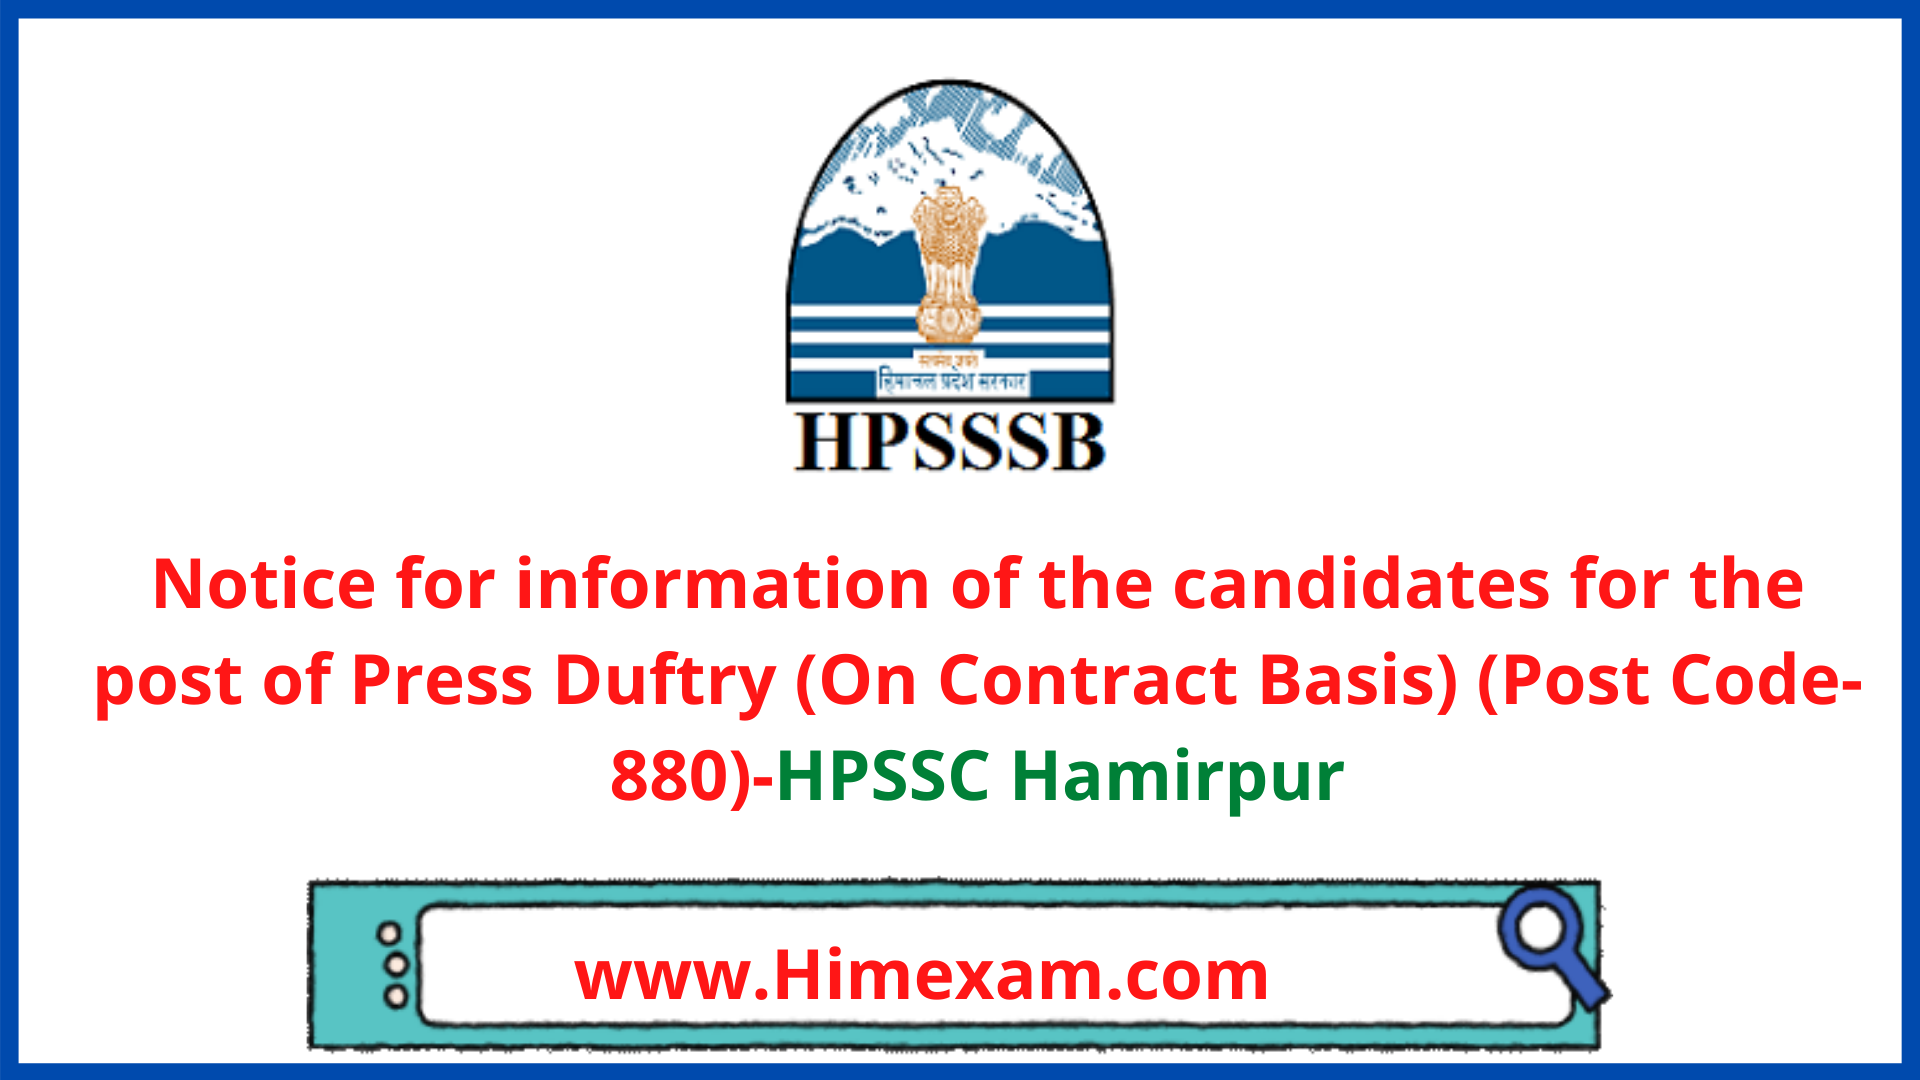 Notice for information of the candidates for the post of Press Duftry (On Contract Basis) (Post Code-880)-HPSSC Hamirpur